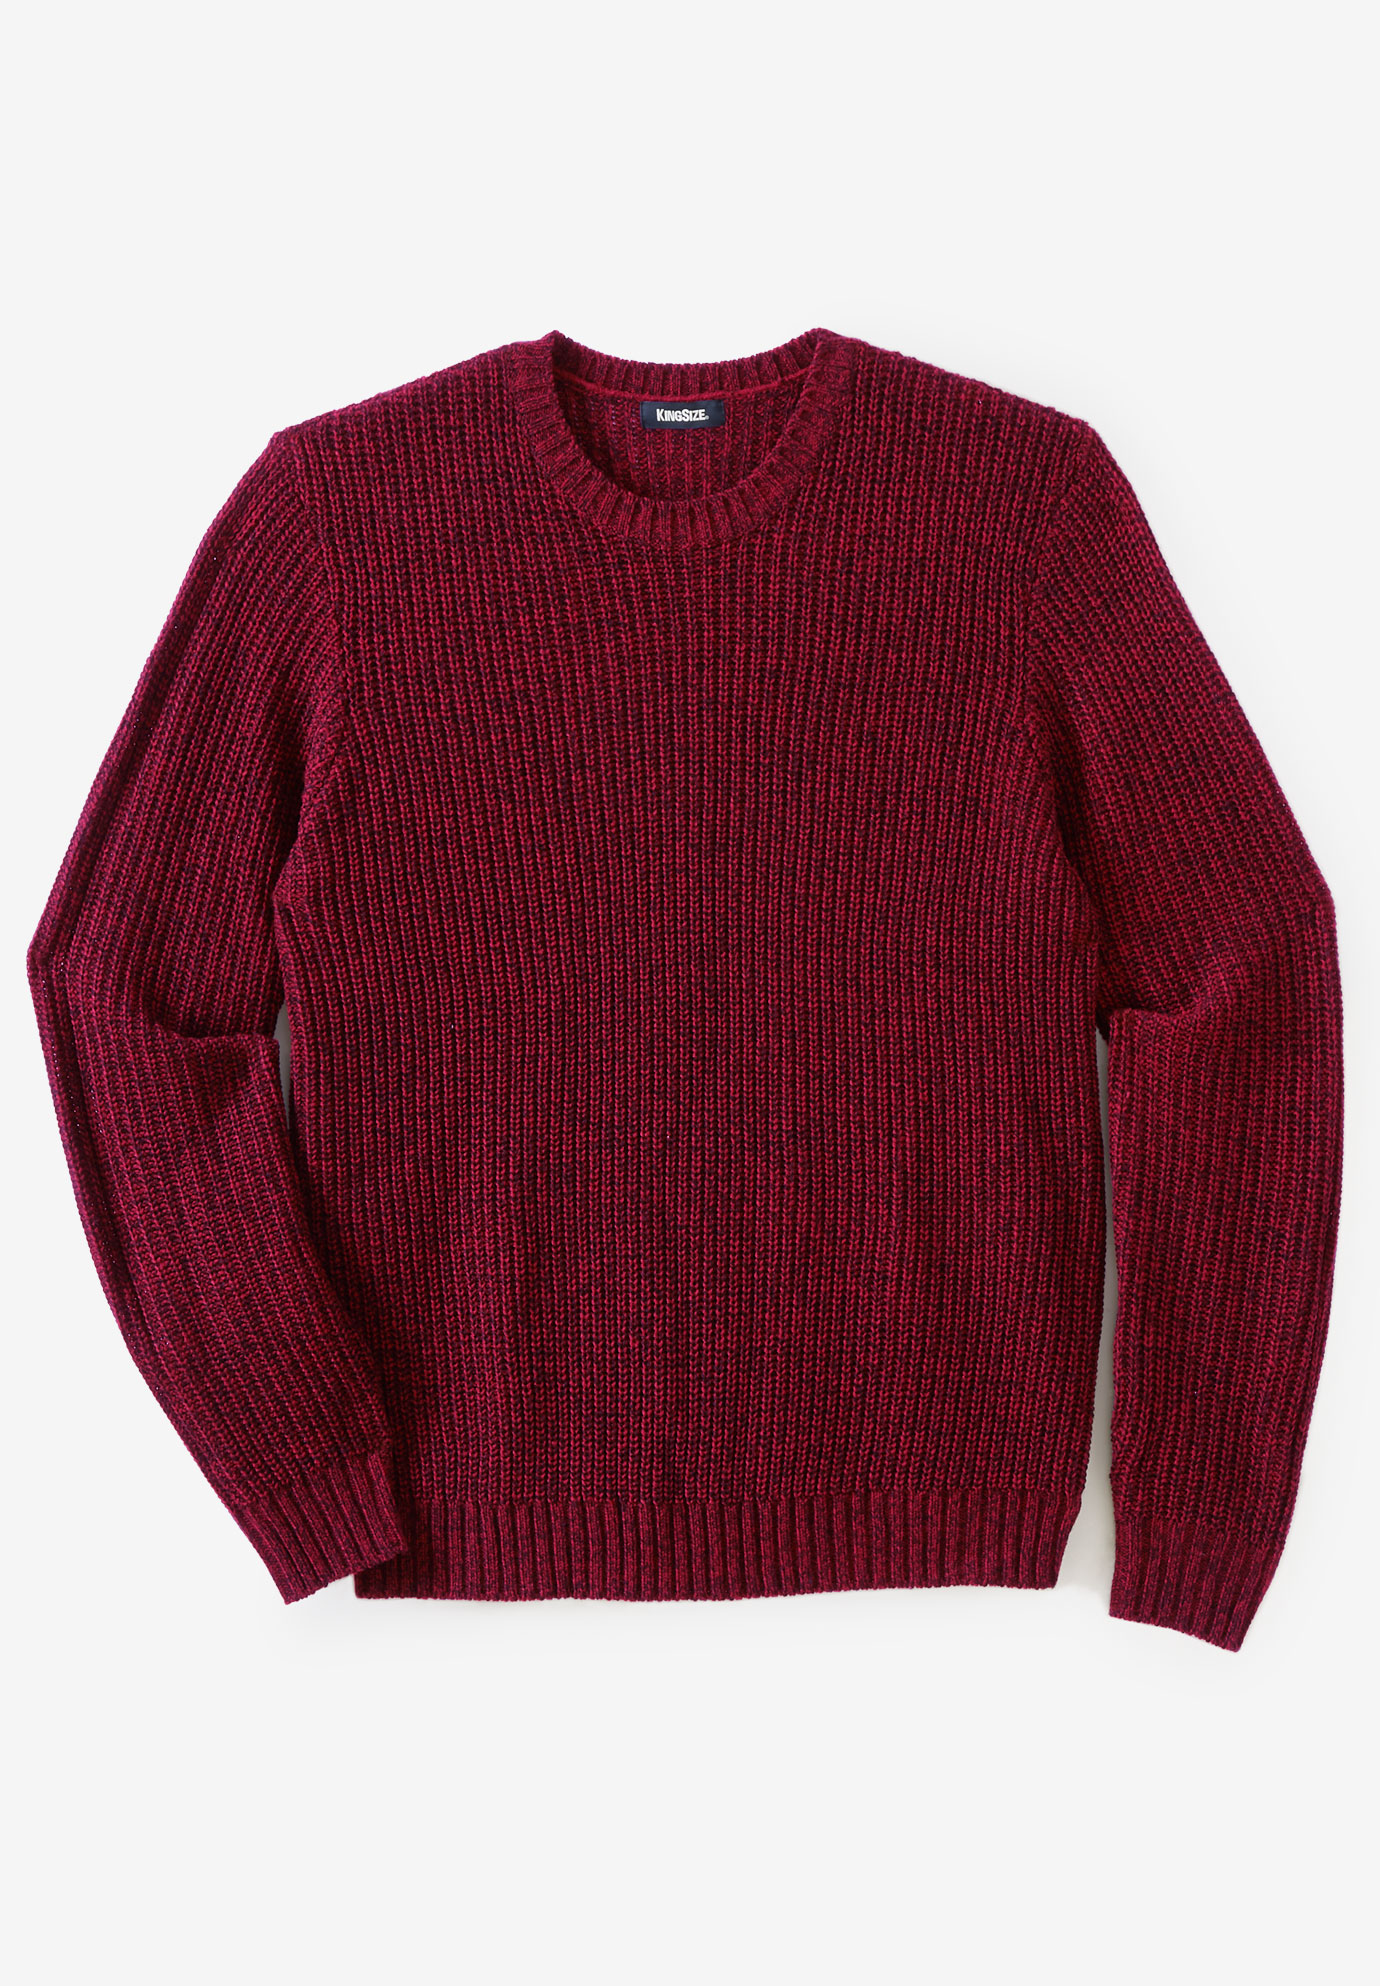 Knit Crewneck Sweater,